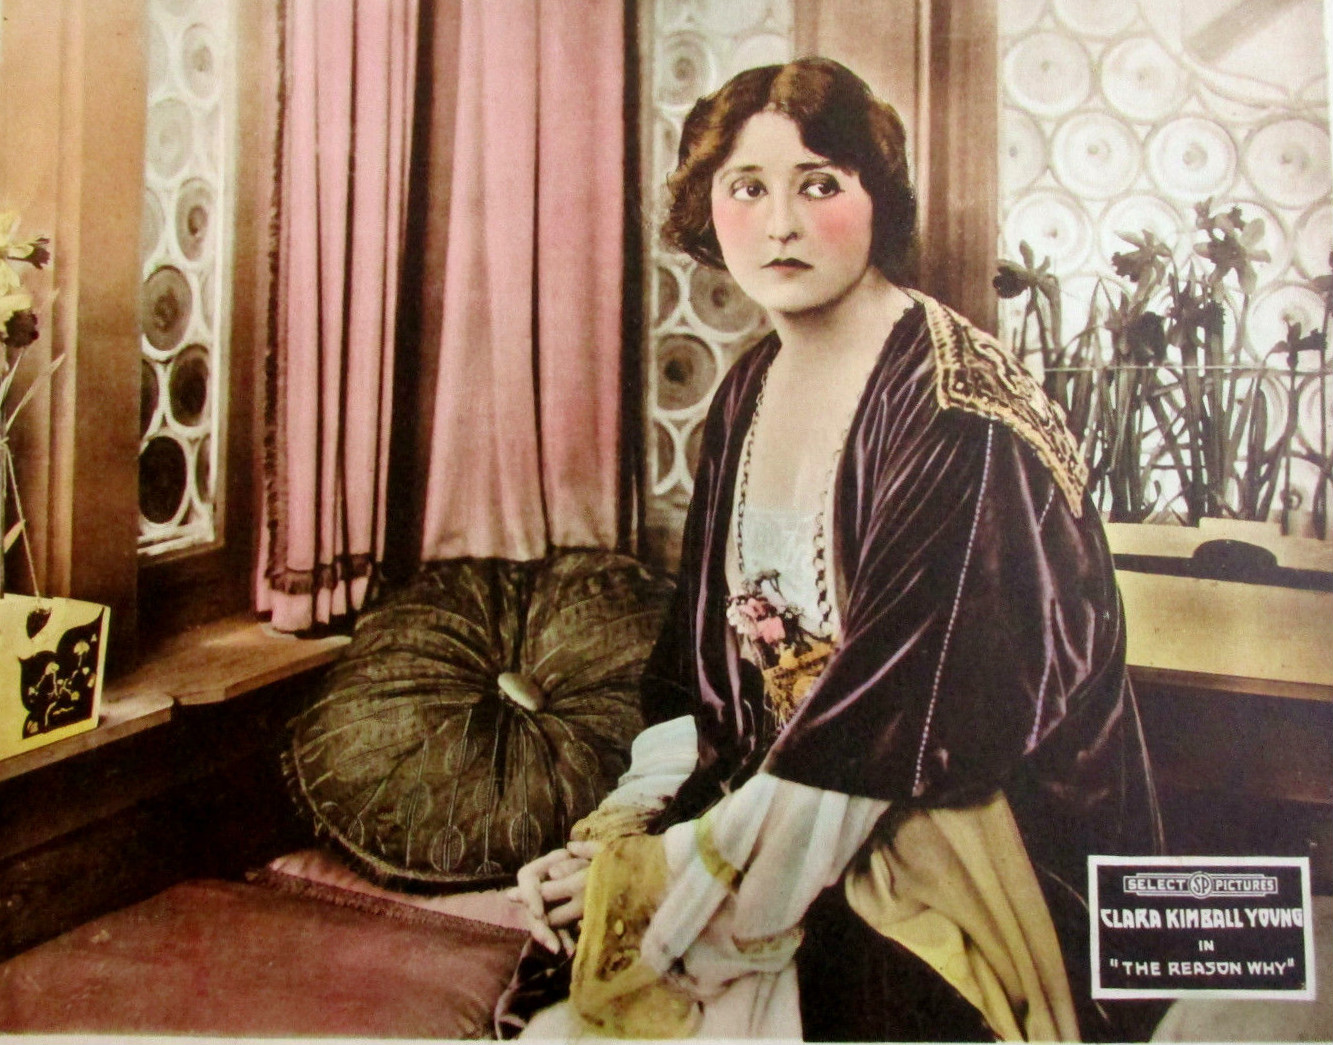 Reason Why lobby card